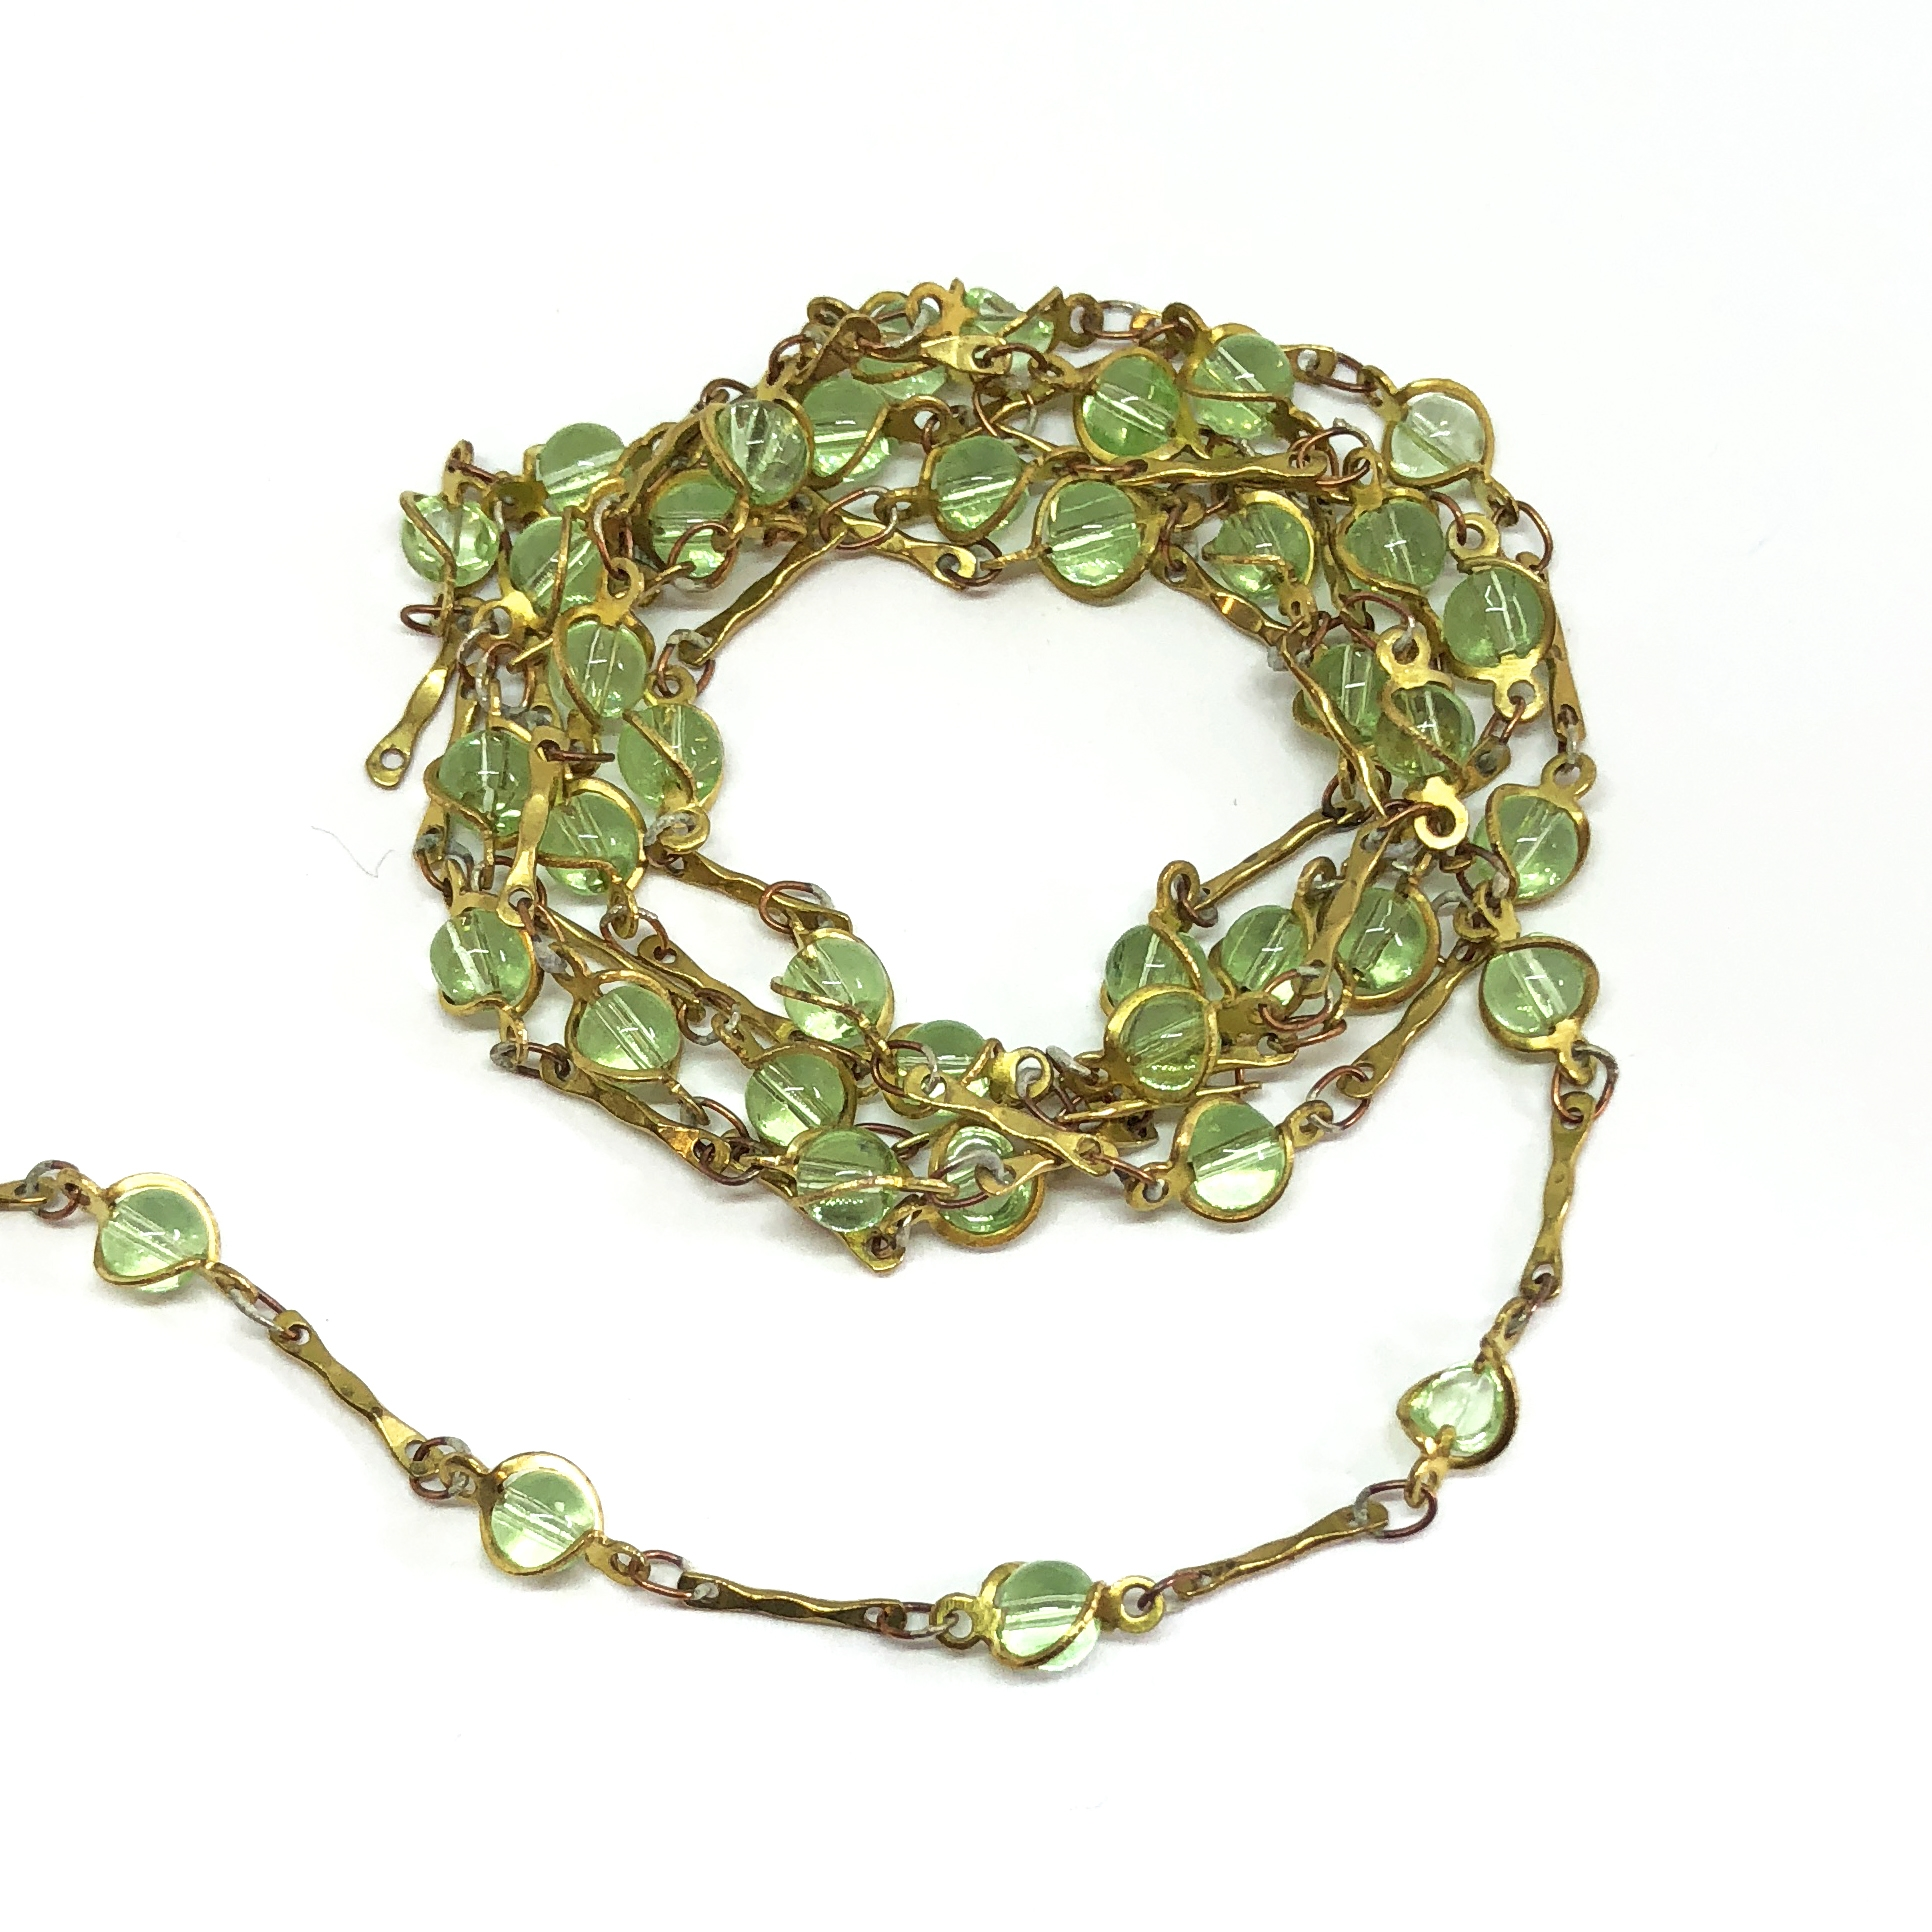 caged bead and link chain, bead chain, peridot bead chain, hand wrapped, jewelry chain, jewelry making supplies, vintage jewelry supplies, bead chain,  glass beads, chain, beaded chain, caged beads, transparent peridot beads, antique brass chain, 08053